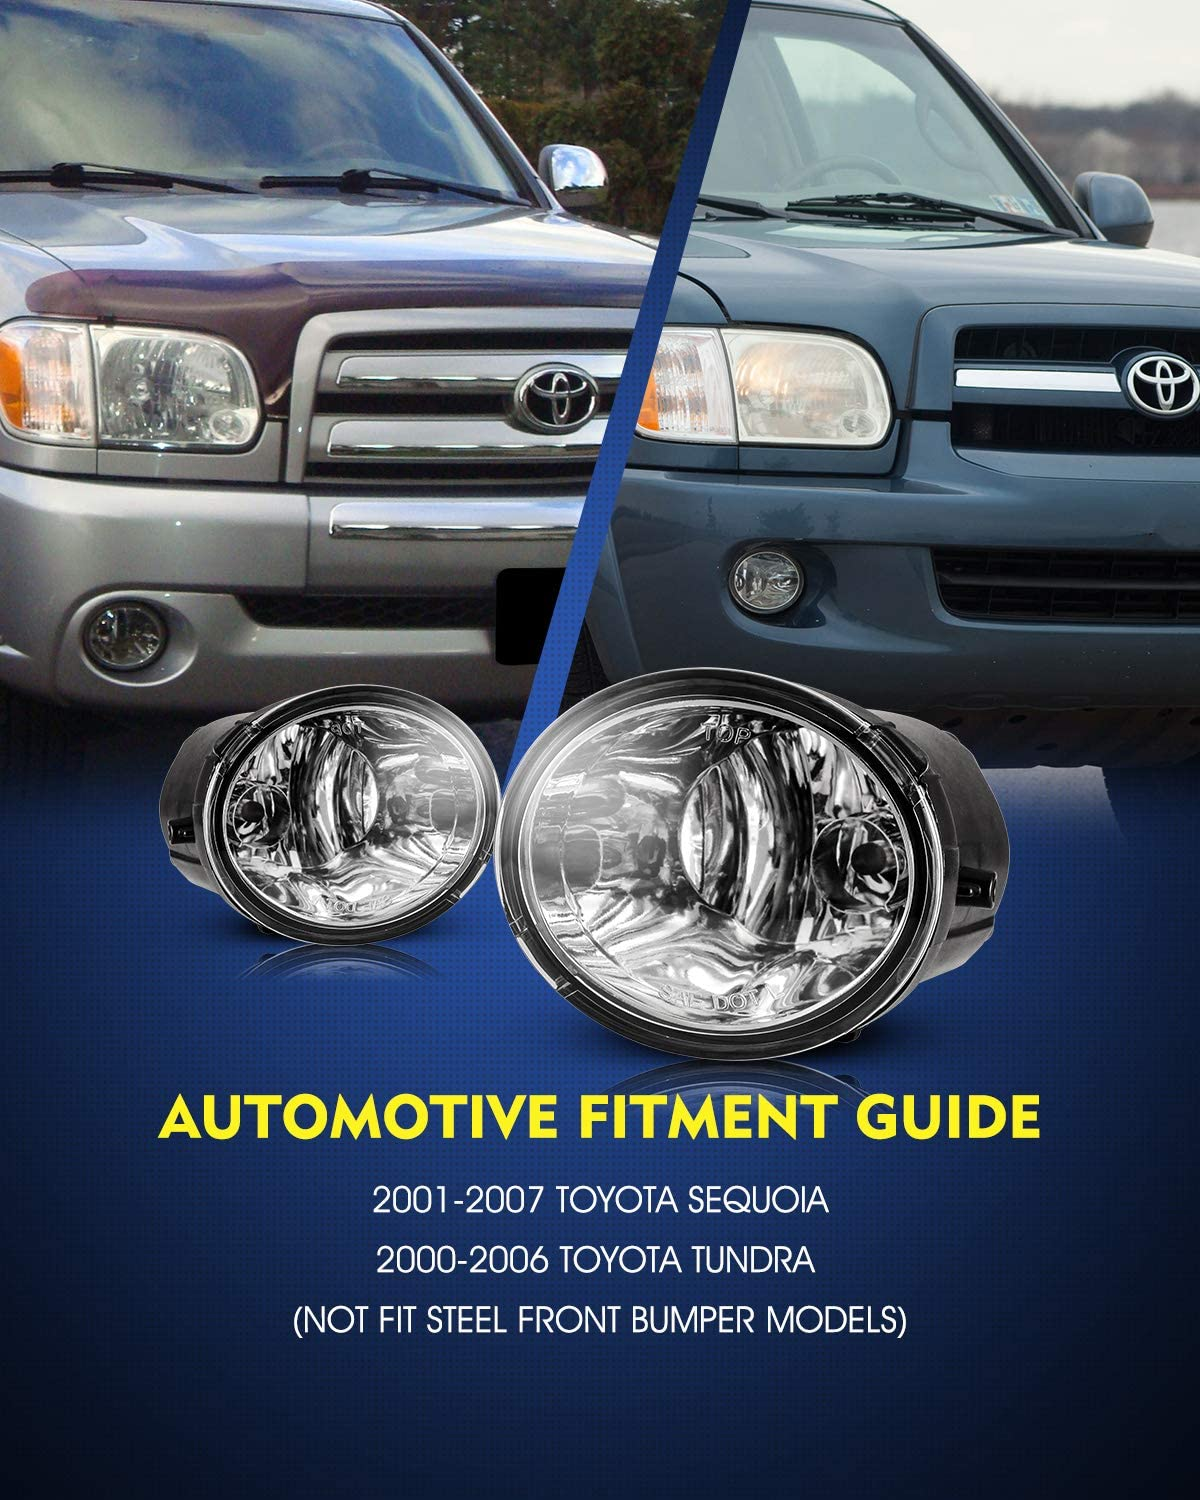 Not Fit Steel Front Bumper Models AUTOWIKI Fog Lights for 00-06 Toyota Tundra // 01-07 Toyota Sequoia